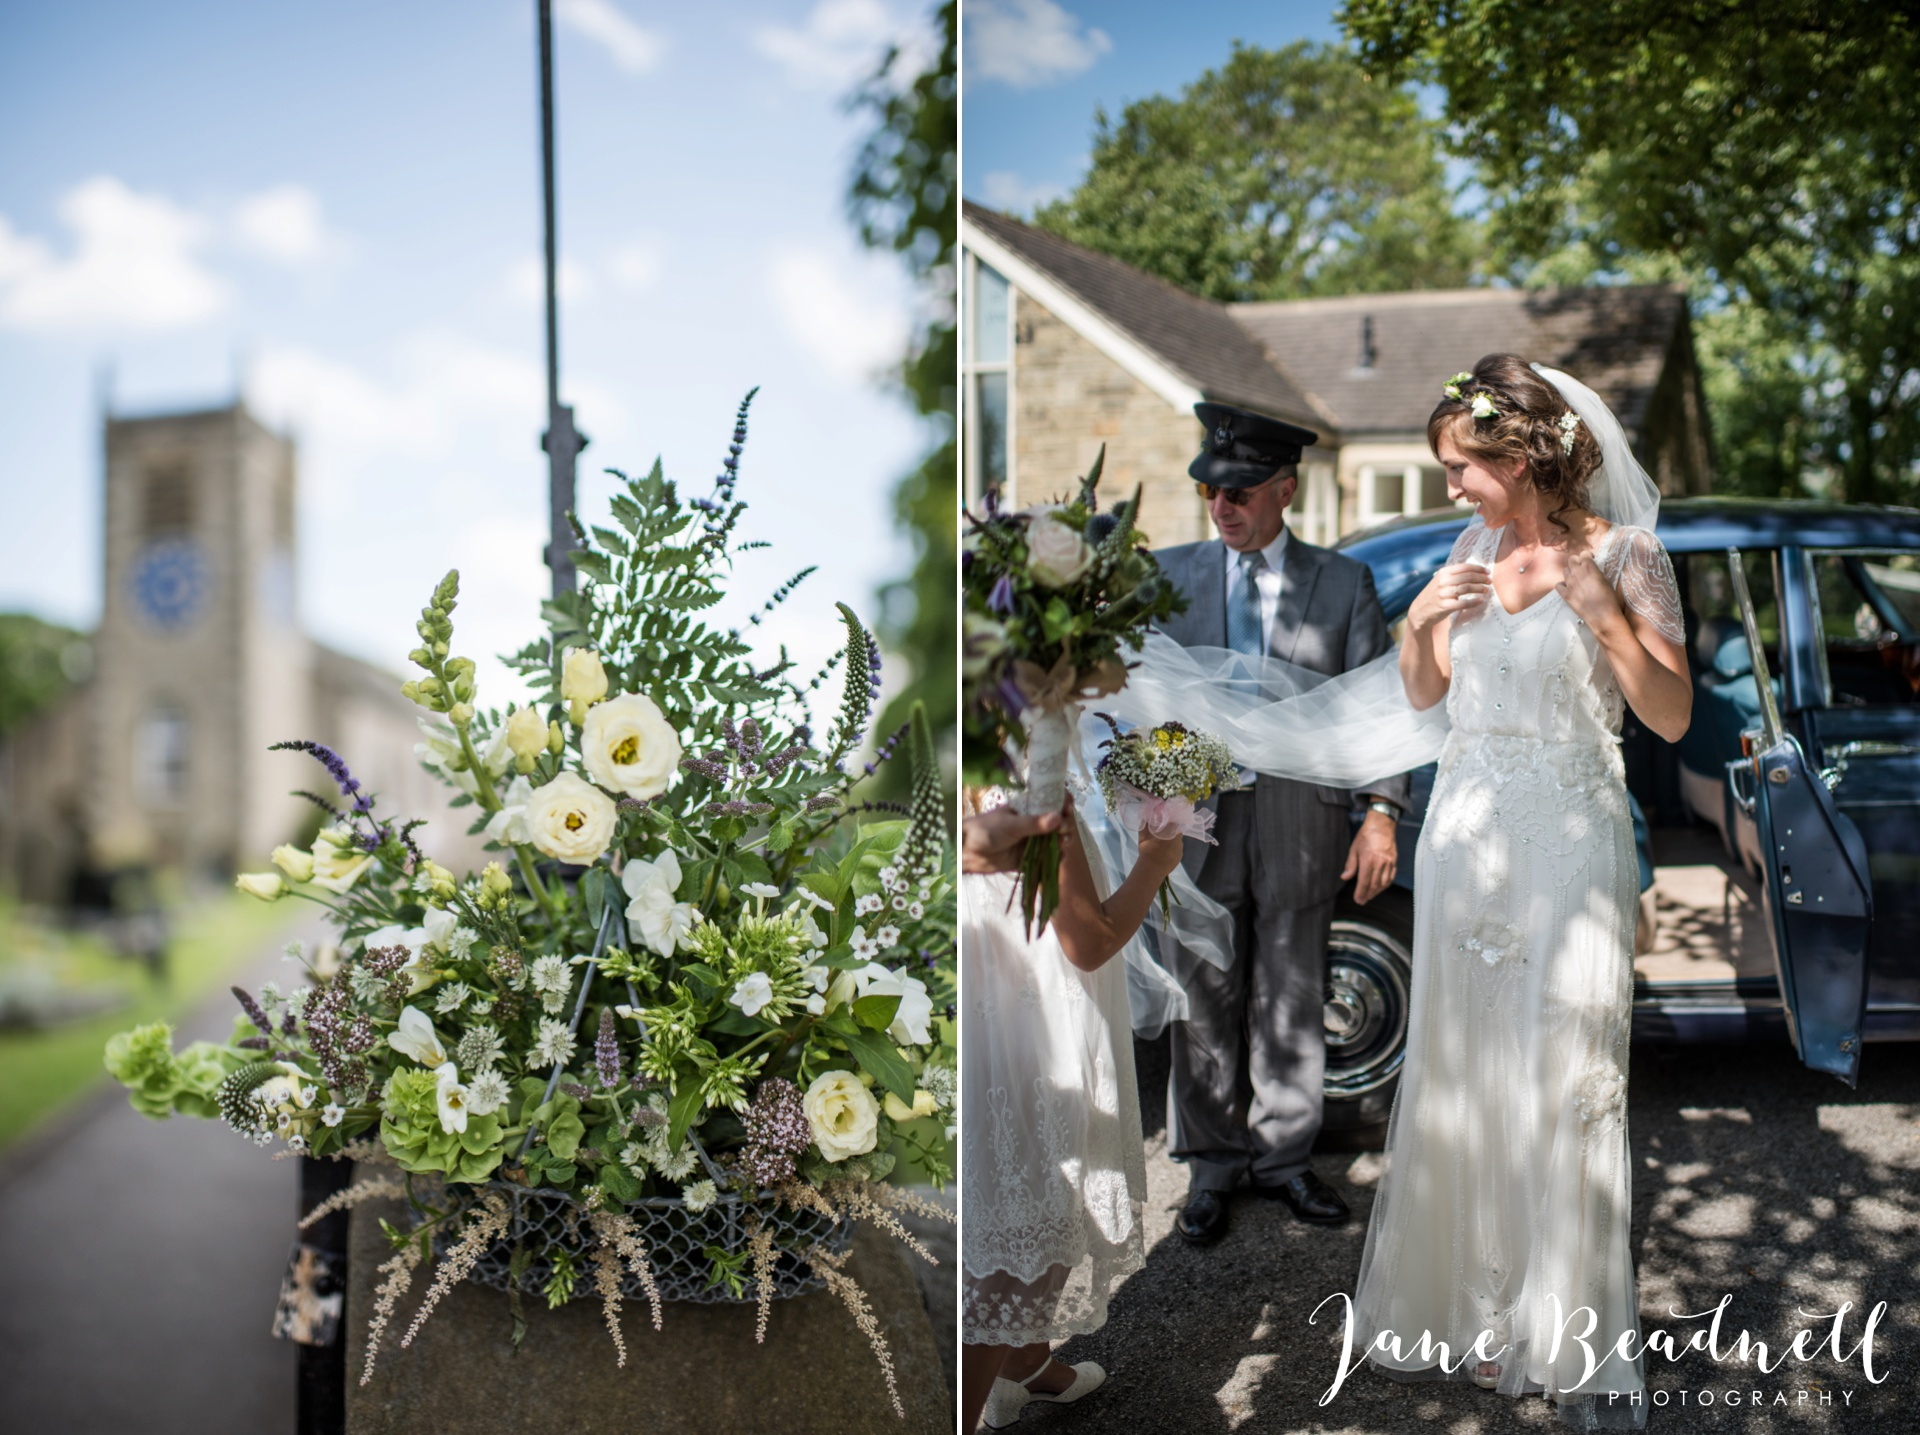 Jane Beadnell fine art wedding photographer Leeds_0032